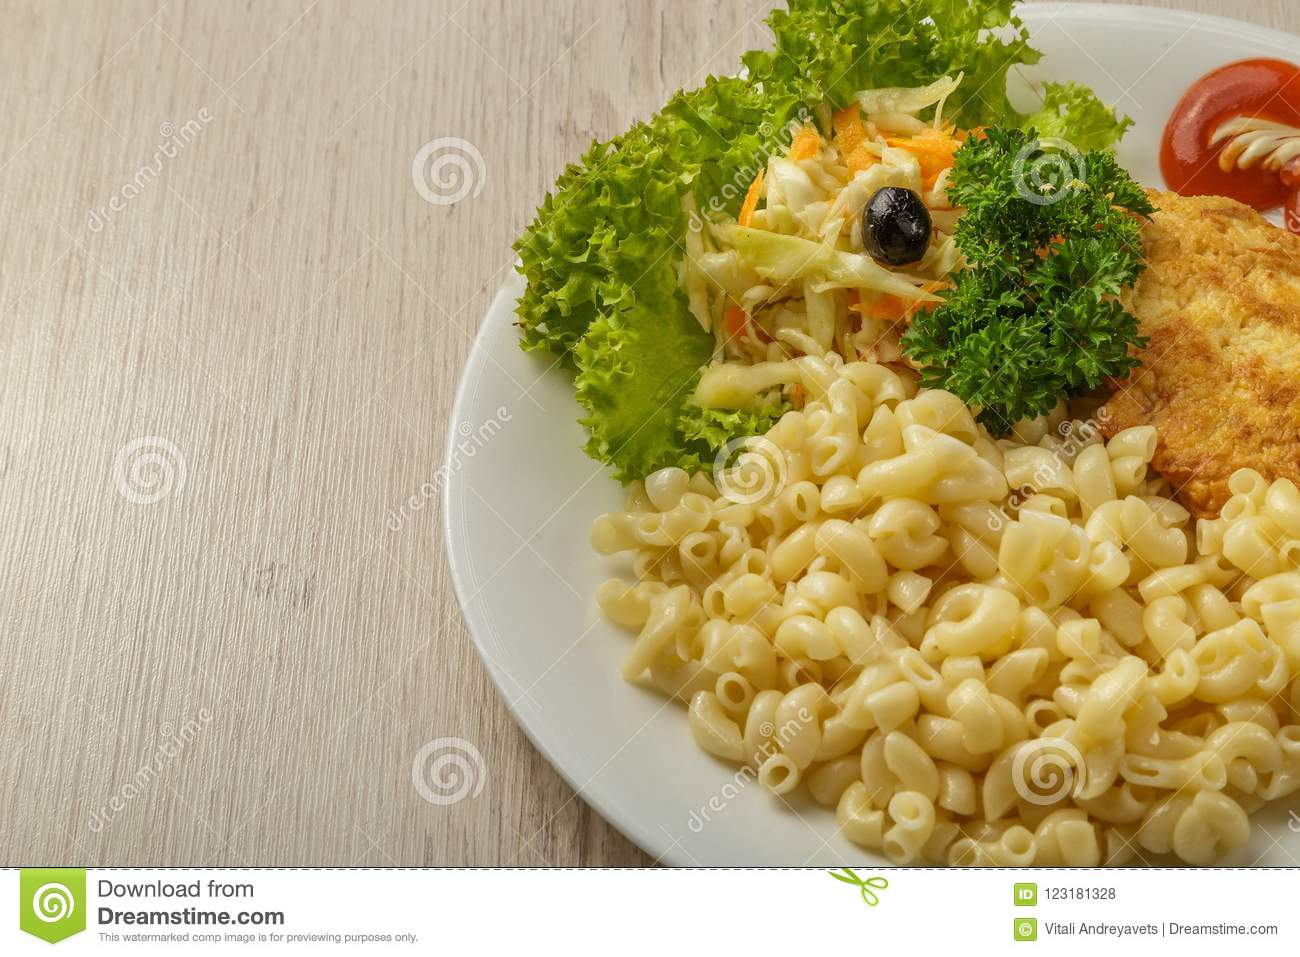 Pasta with a piece of grilled meat and salad.